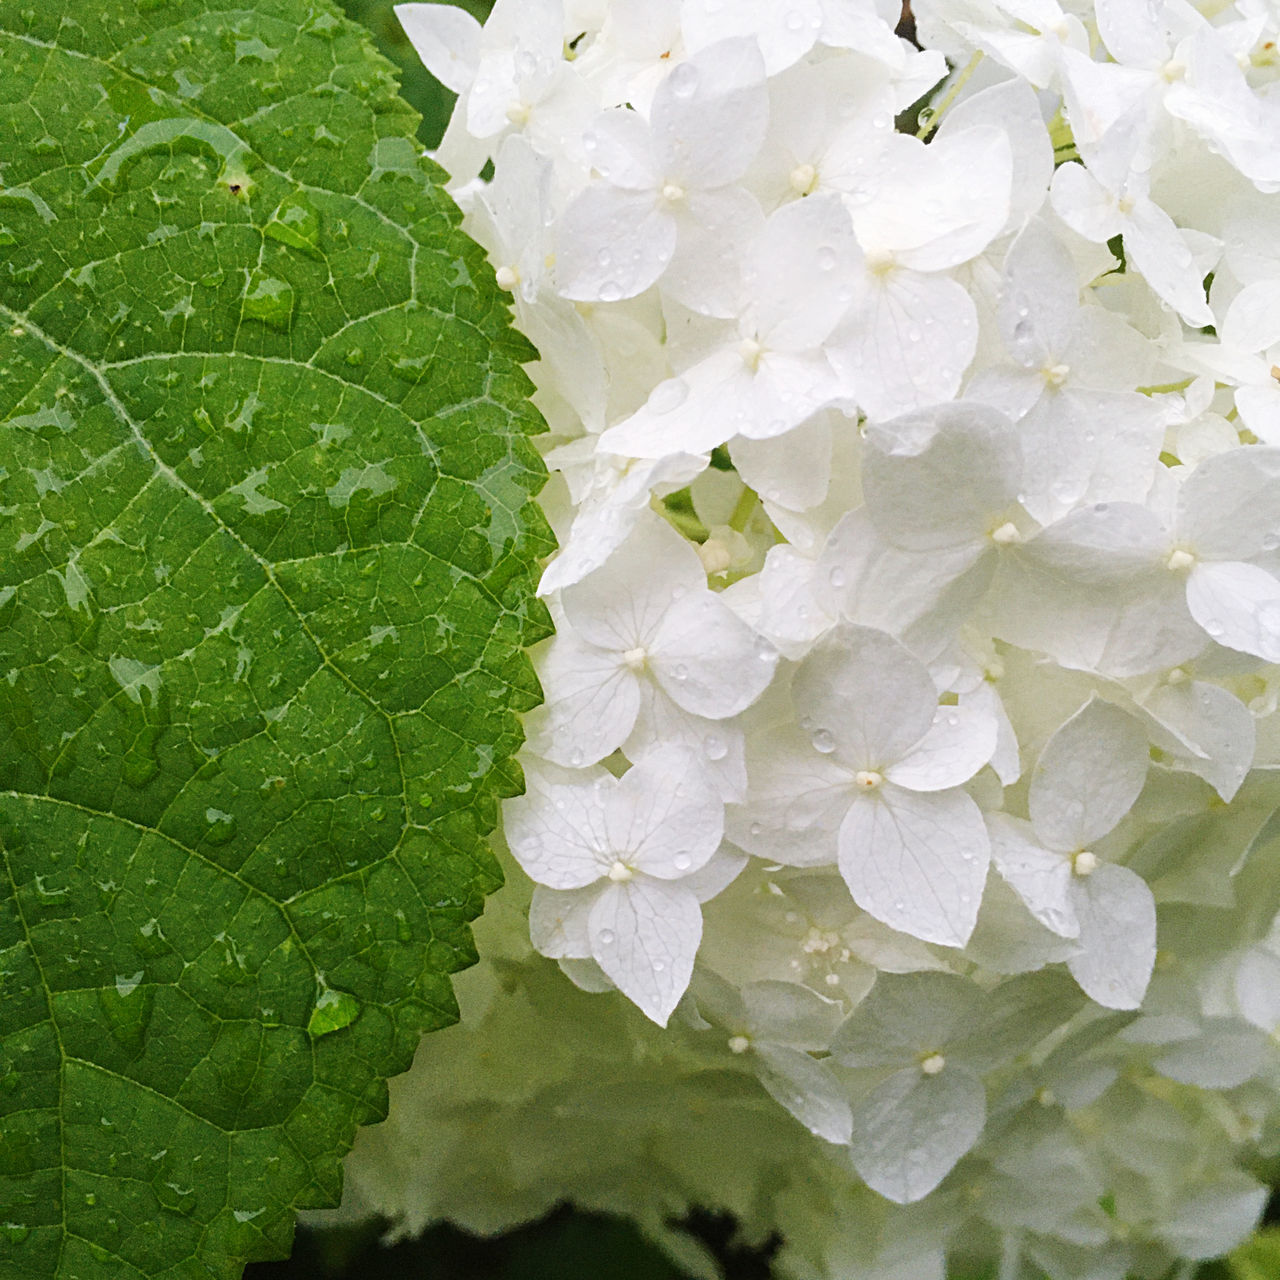 CLOSE-UP OF WATER DROPS ON FRESH WHITE ROSE LEAVES